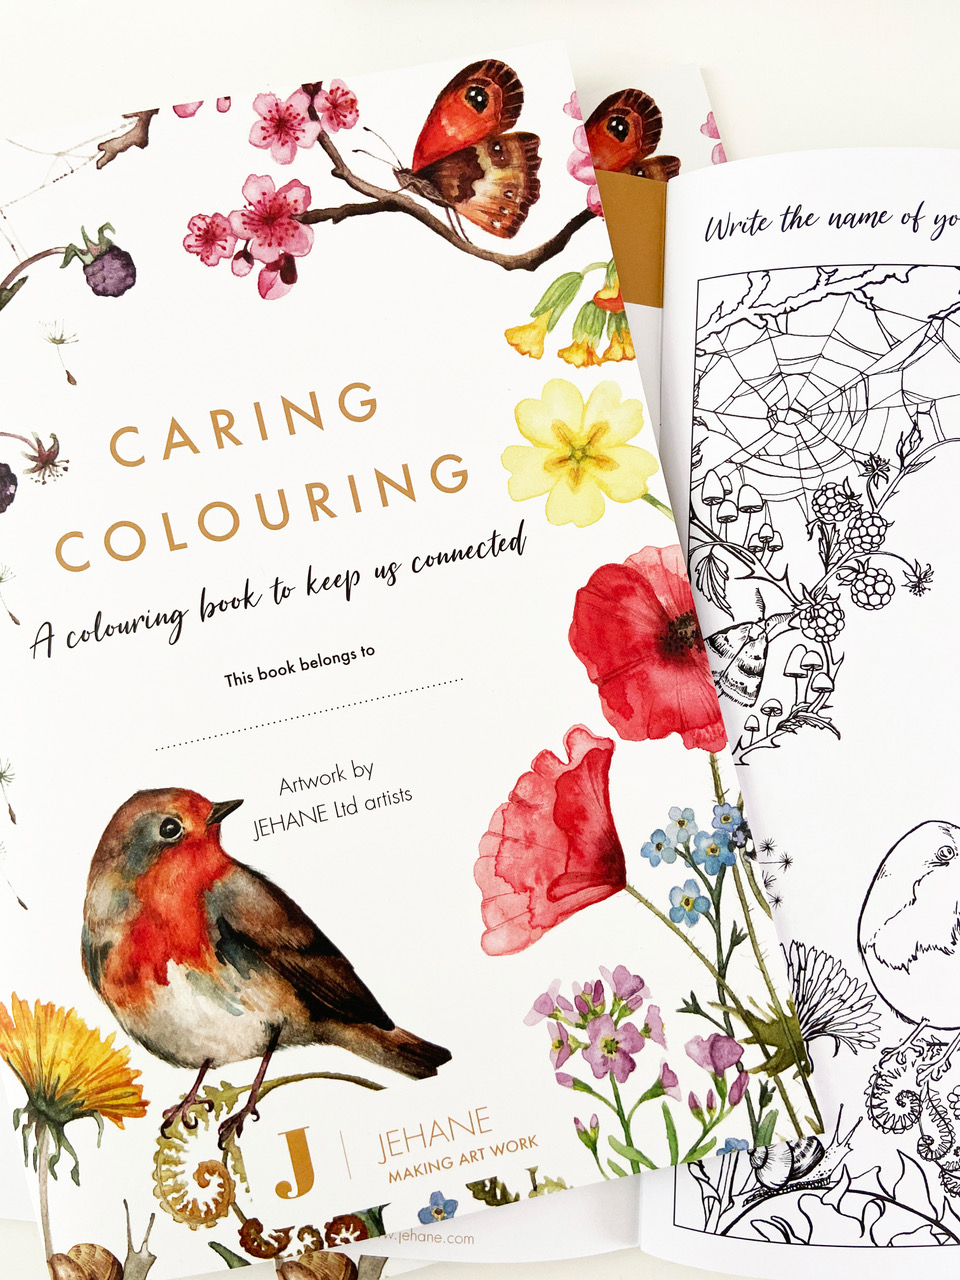 Above: Helen Ahpornsiri artwork appears on the front cover of the colouring book. Her art features in the Wild Press range for Museums & Galleries.